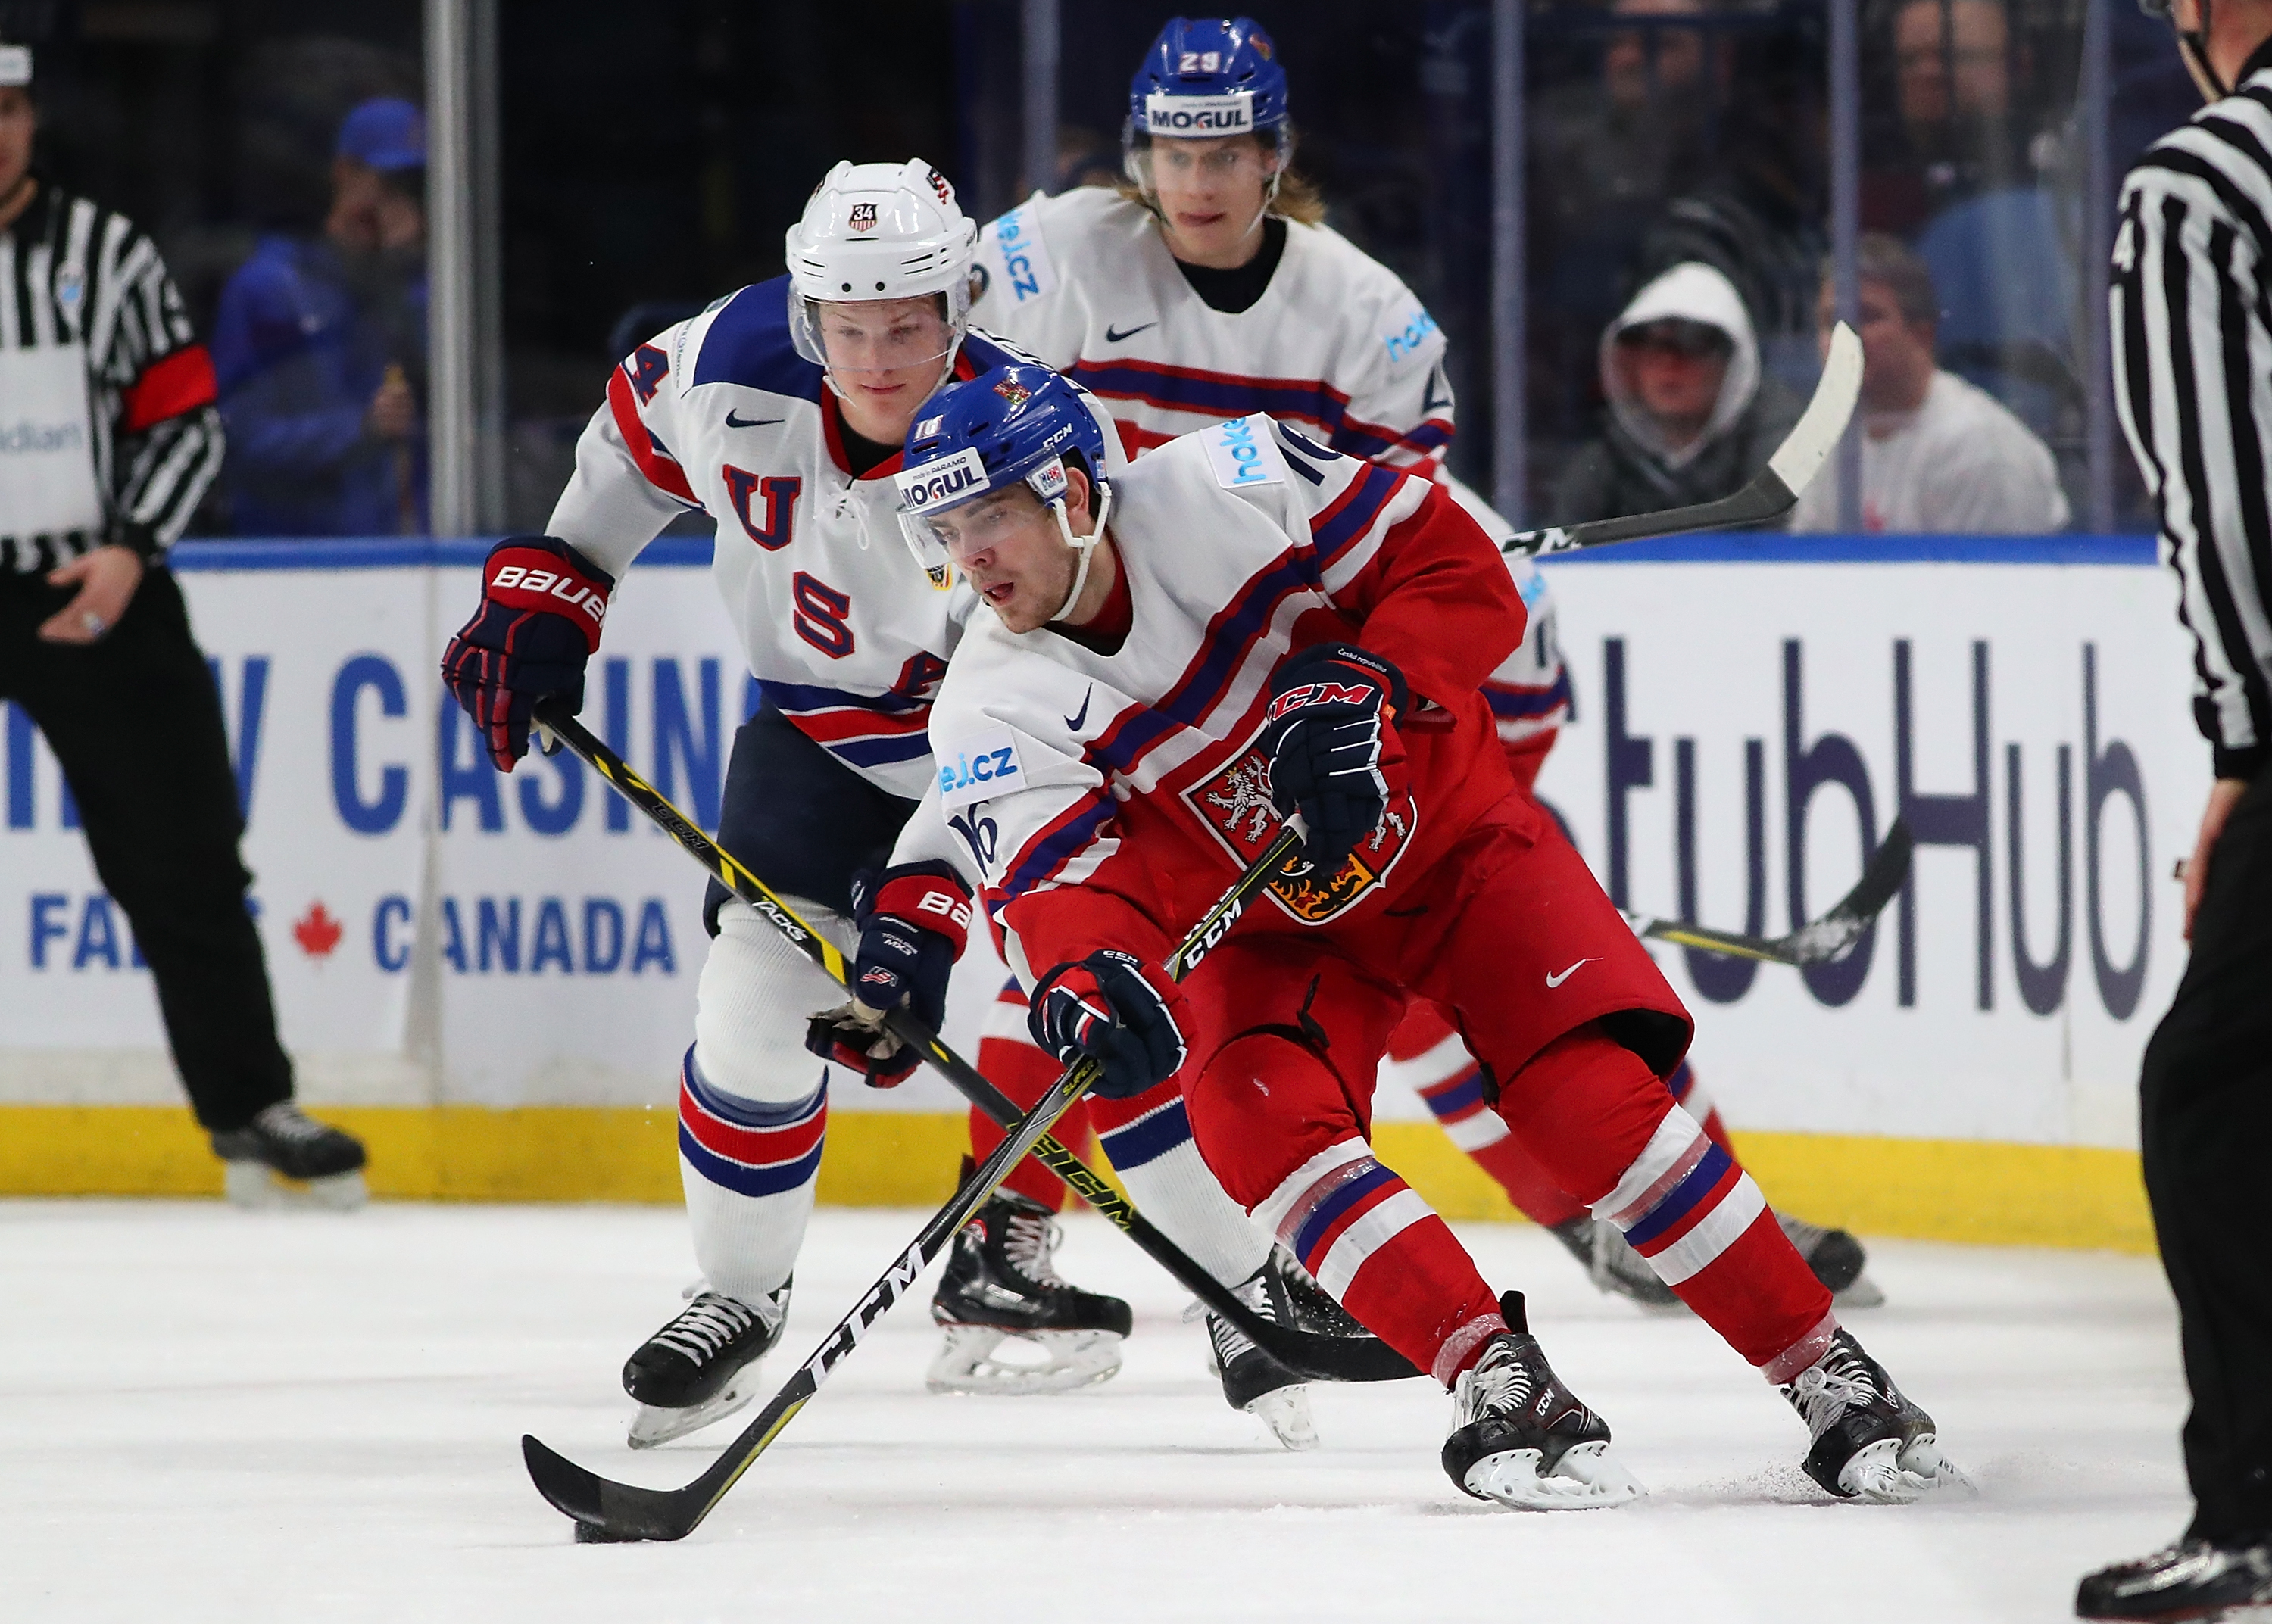 BUFFALO, NY - JANUARY 5: Martin Kaut #16 of Czech Republic with the puck as Trent Frederic #34 of United States defends in the first period during the Bronze Medal Game of the IIHF World Junior Championship at KeyBank Center on January 5, 2018 in Buffalo,